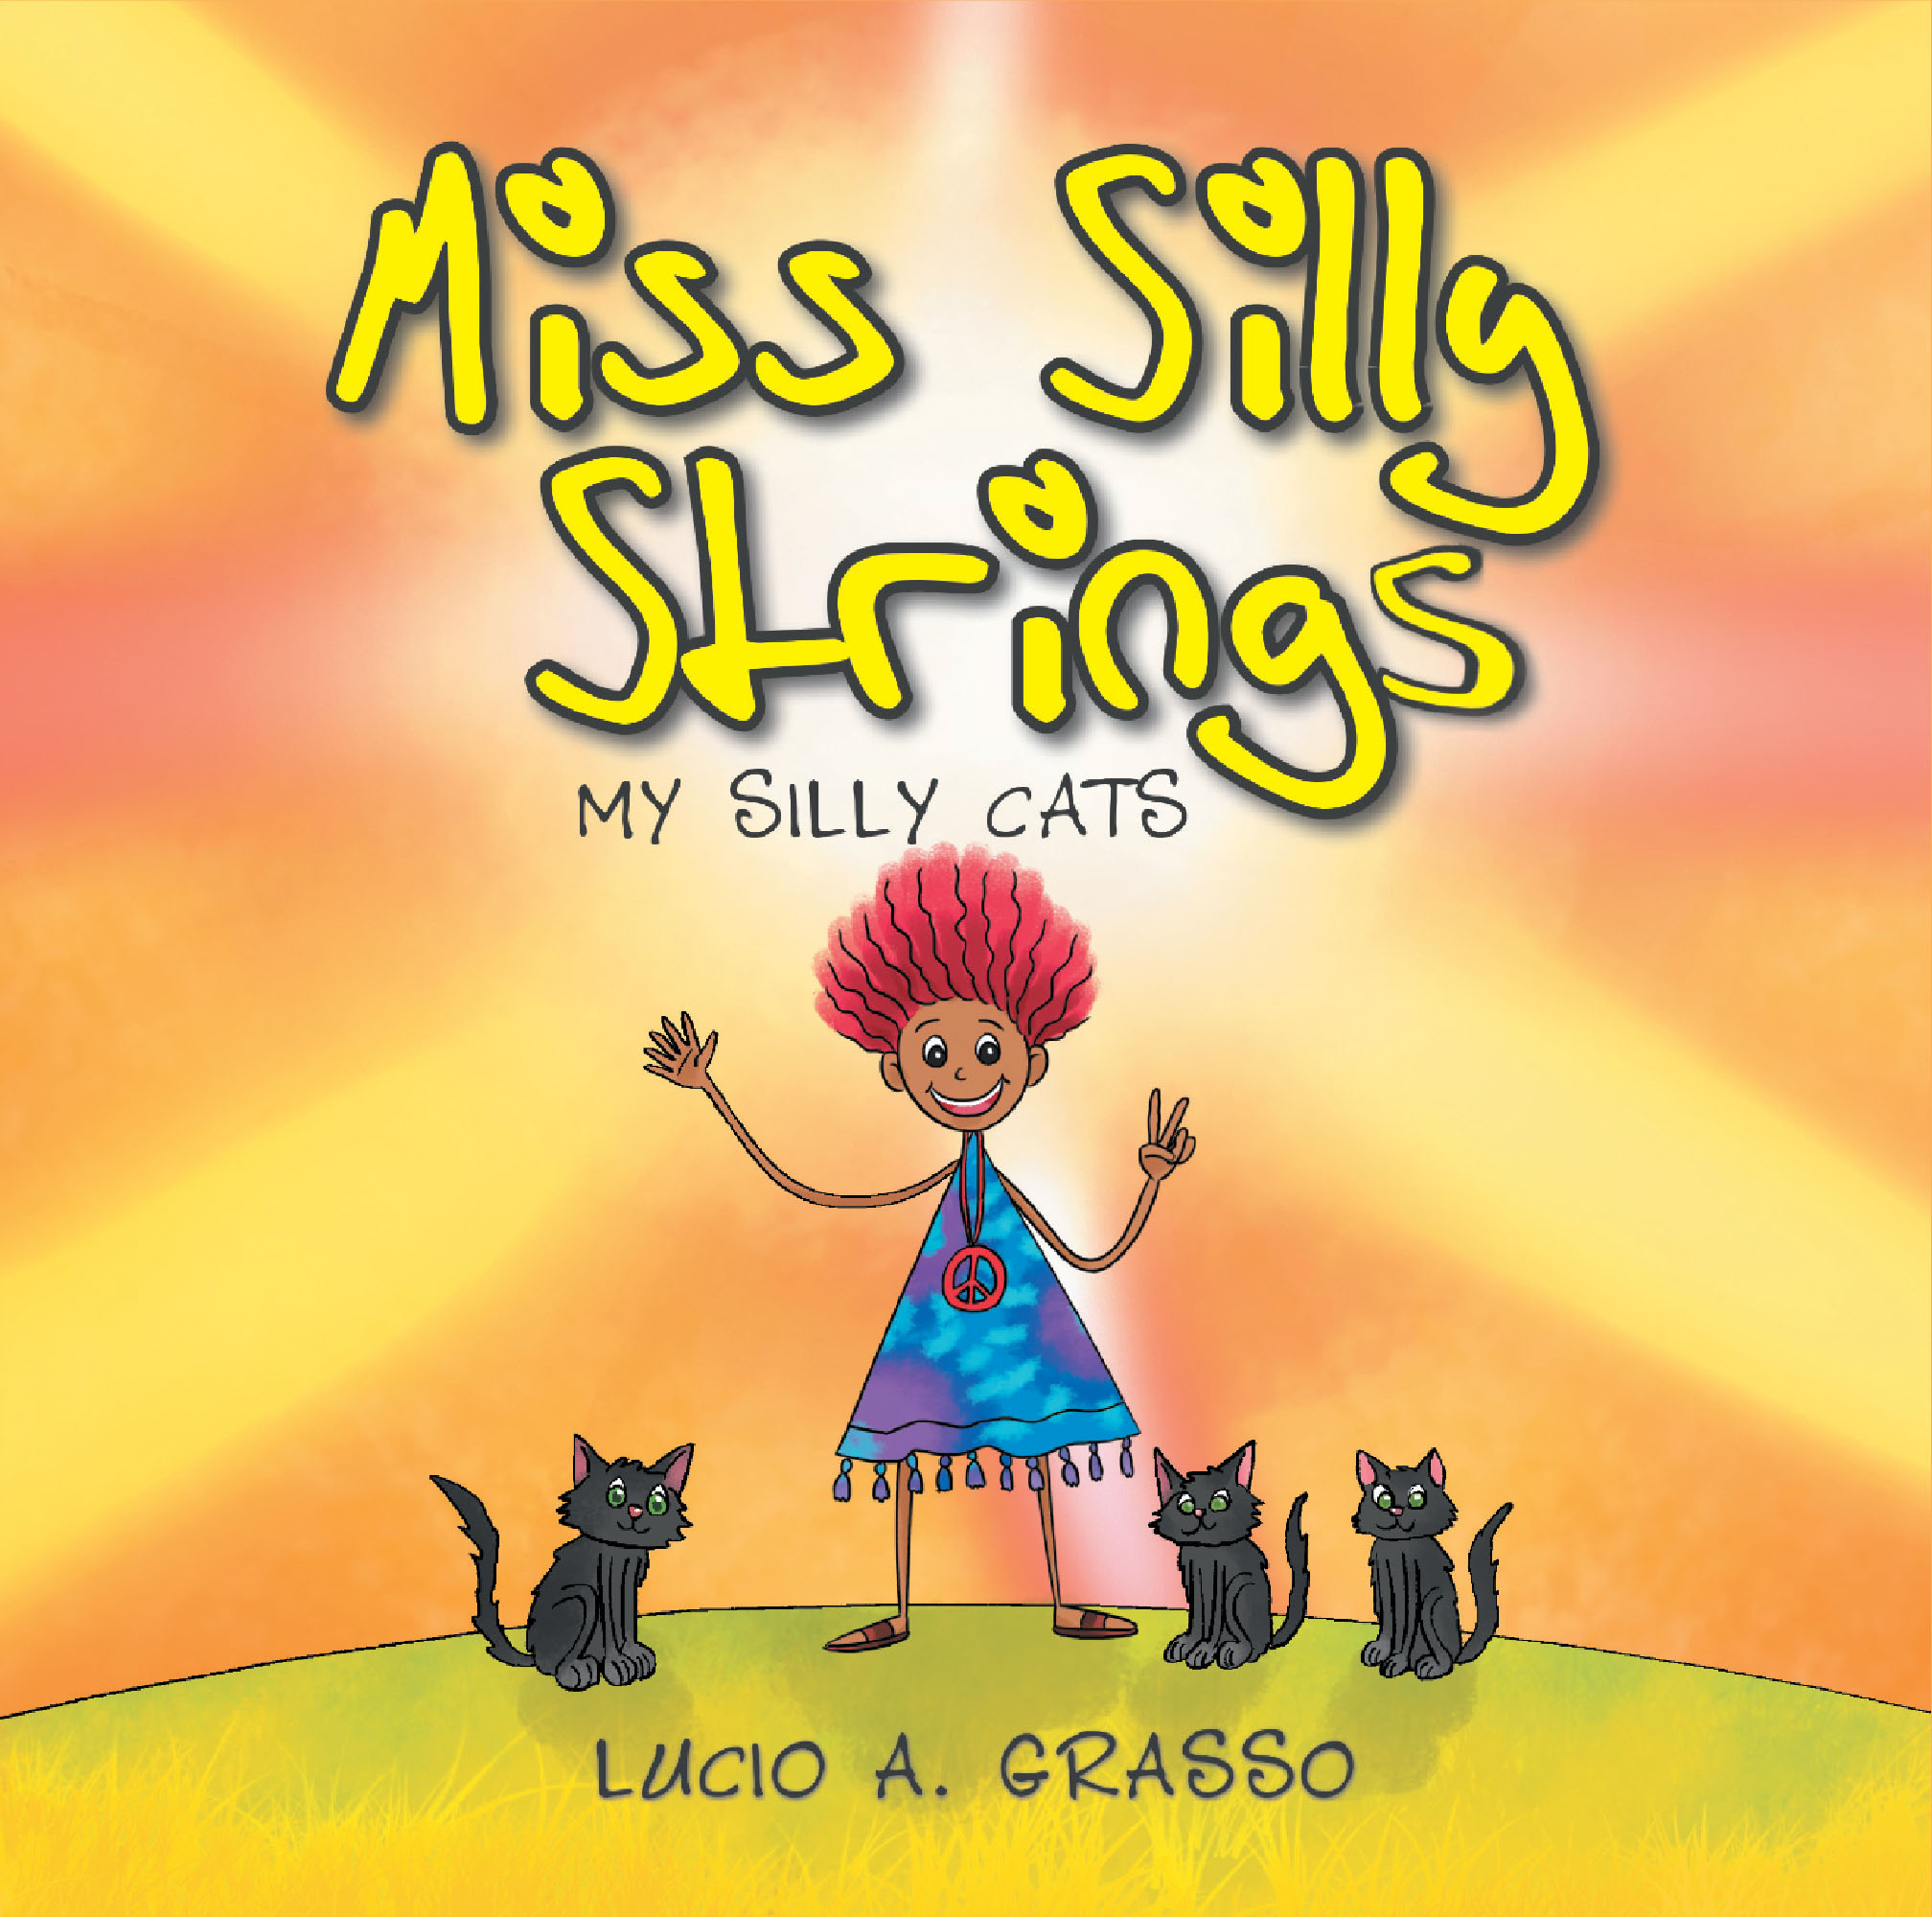 Miss Silly Strings